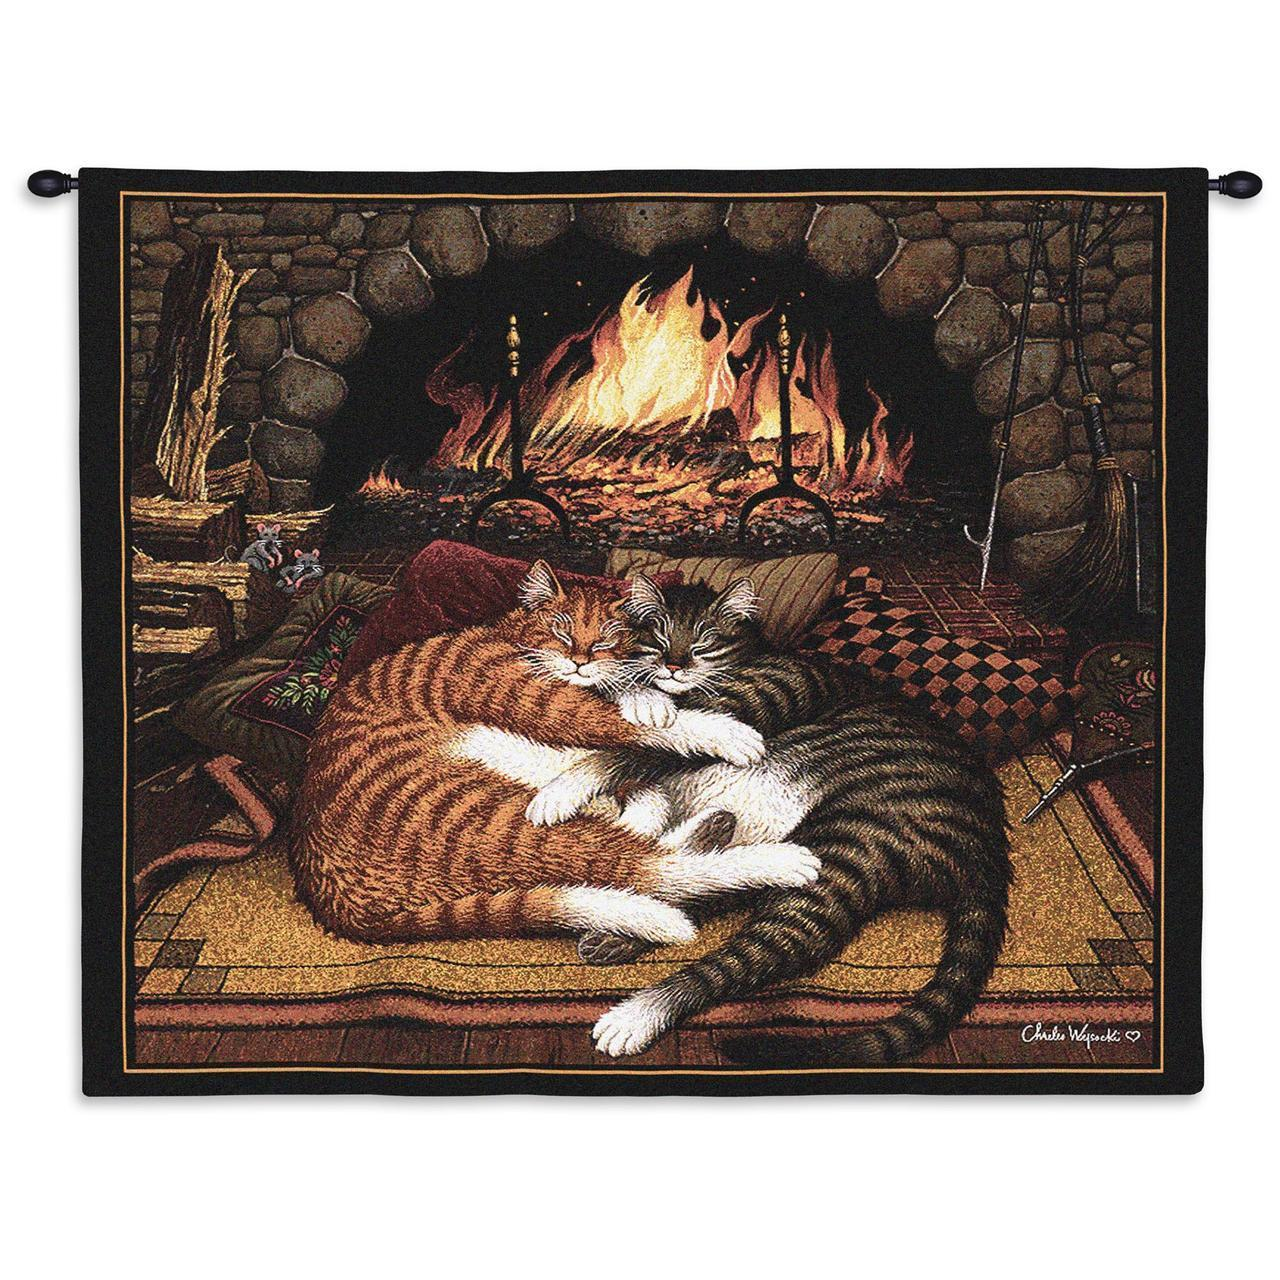 34x26 All Burned Out CATS Kitty Sleeping by Fireplace Tapestry Wall Hanging  - $60.00